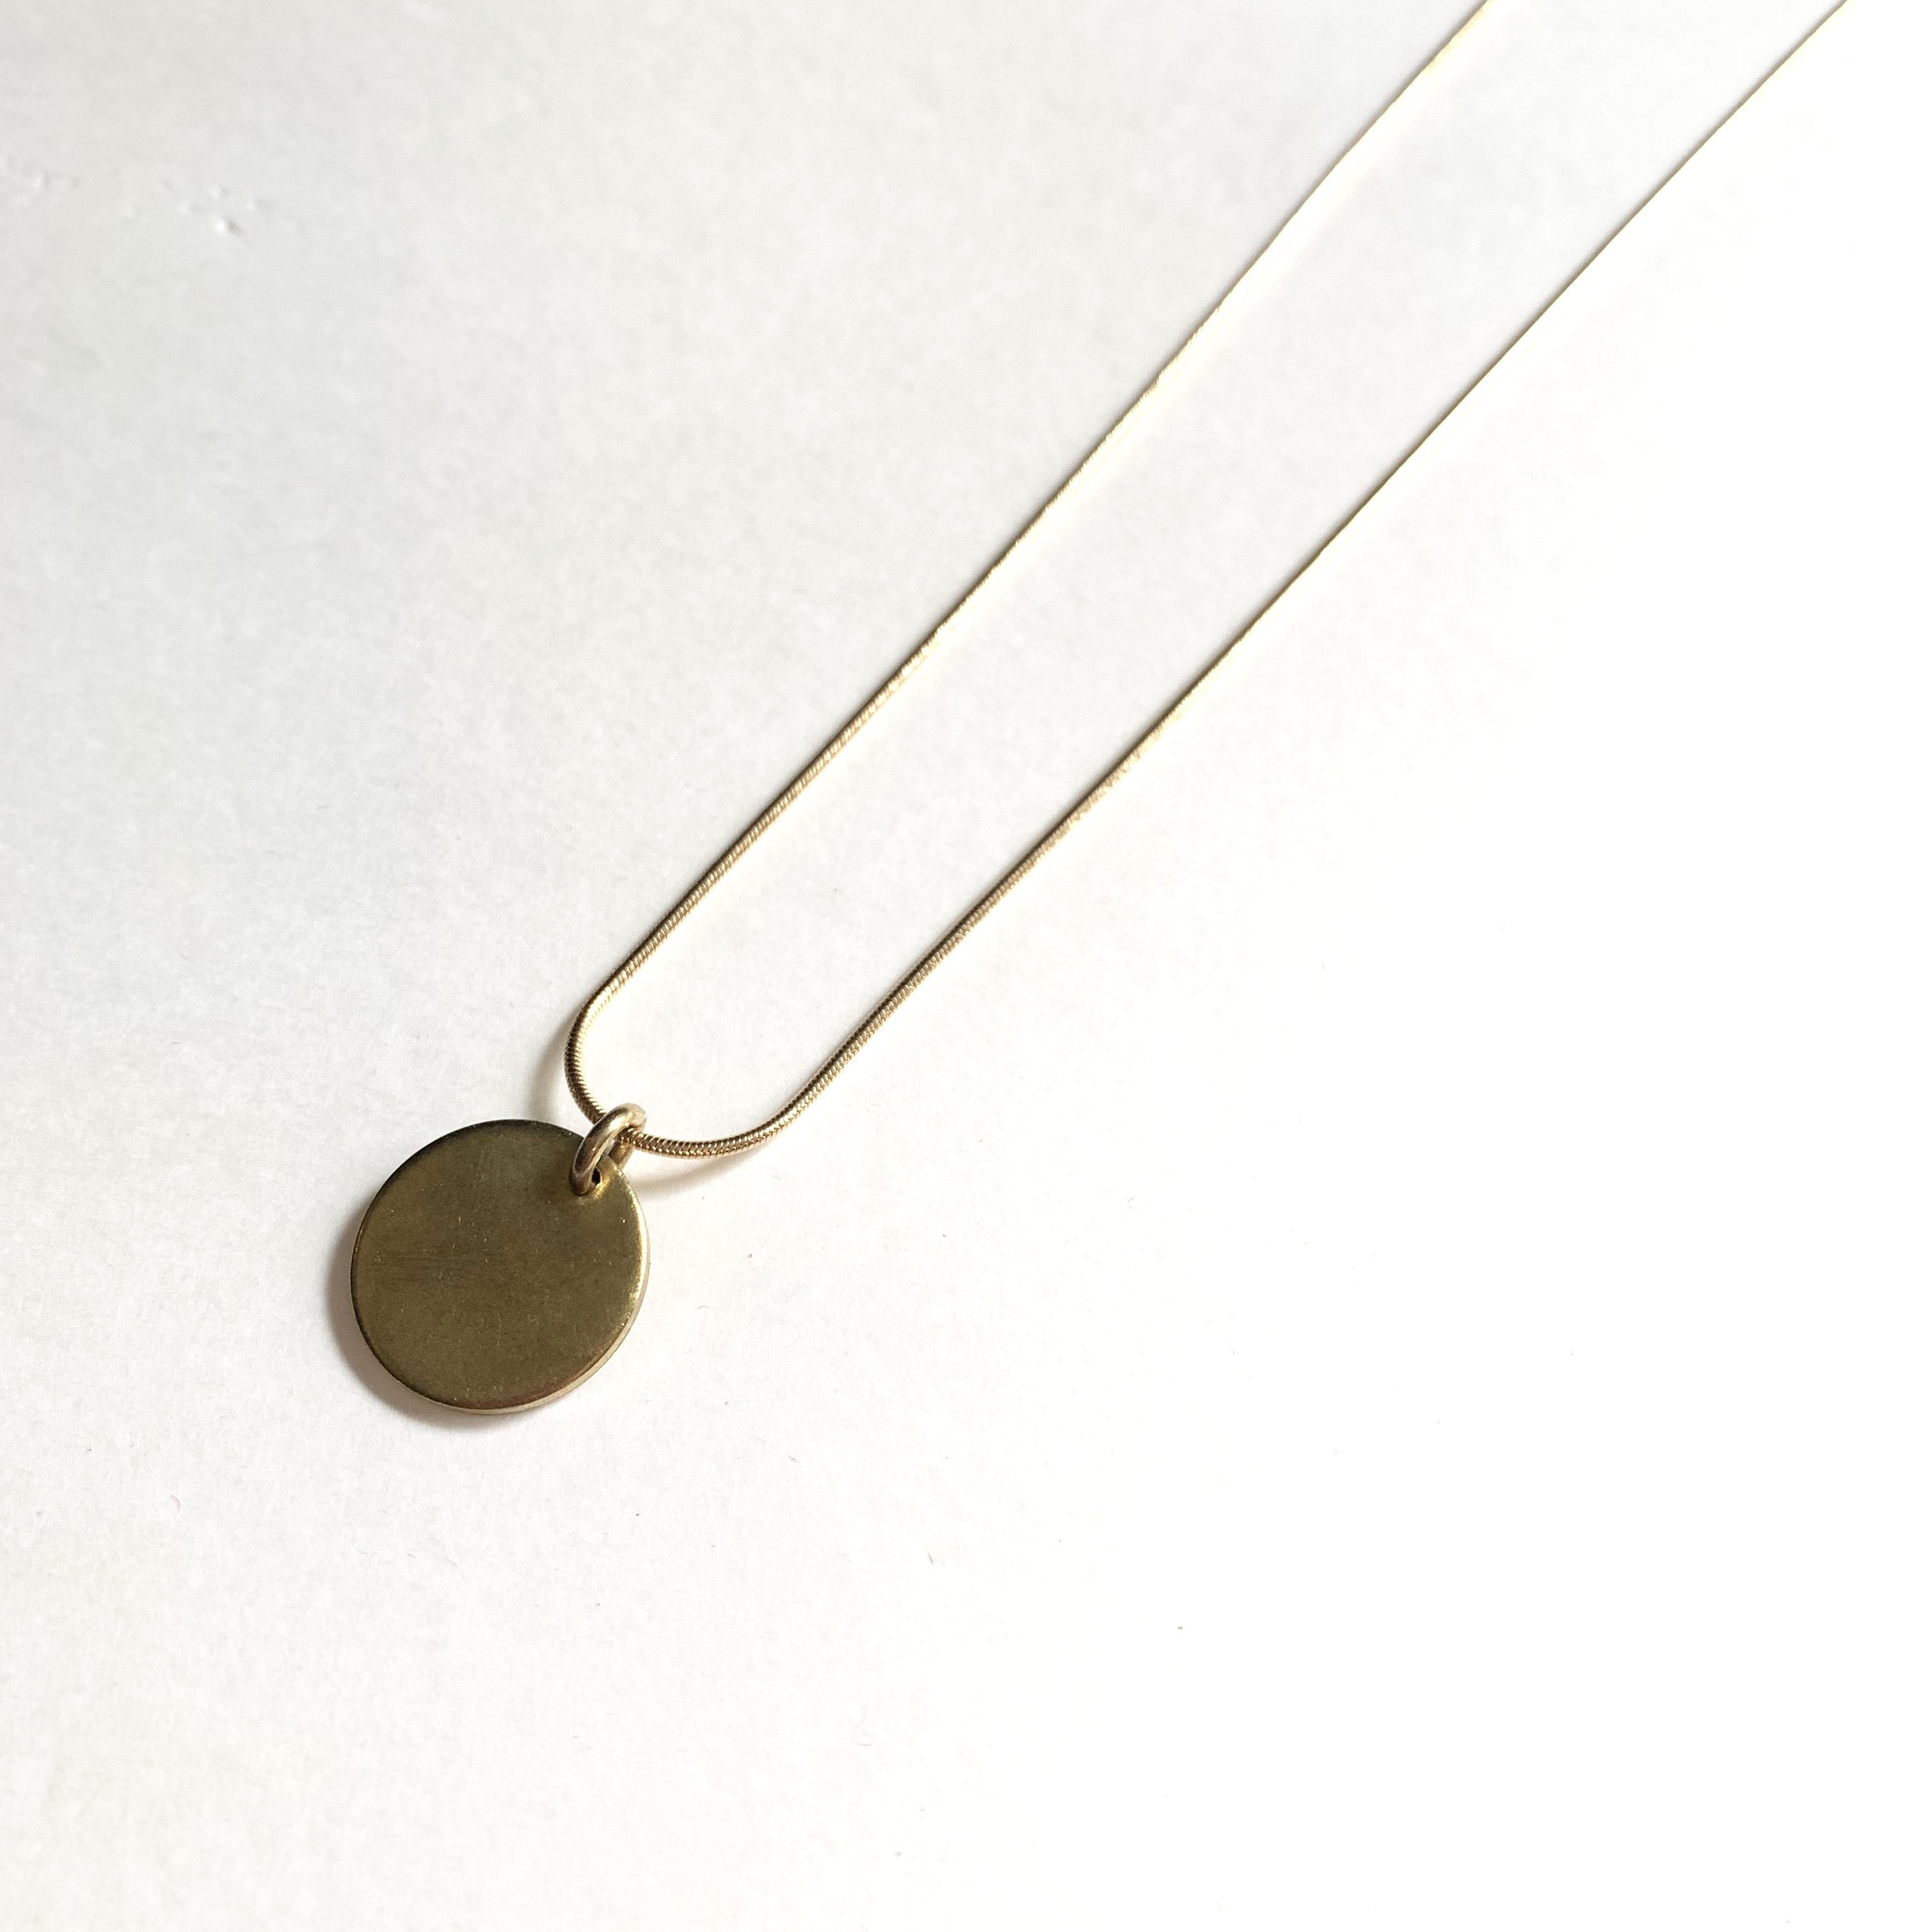 Coin necklace-15 NC-022